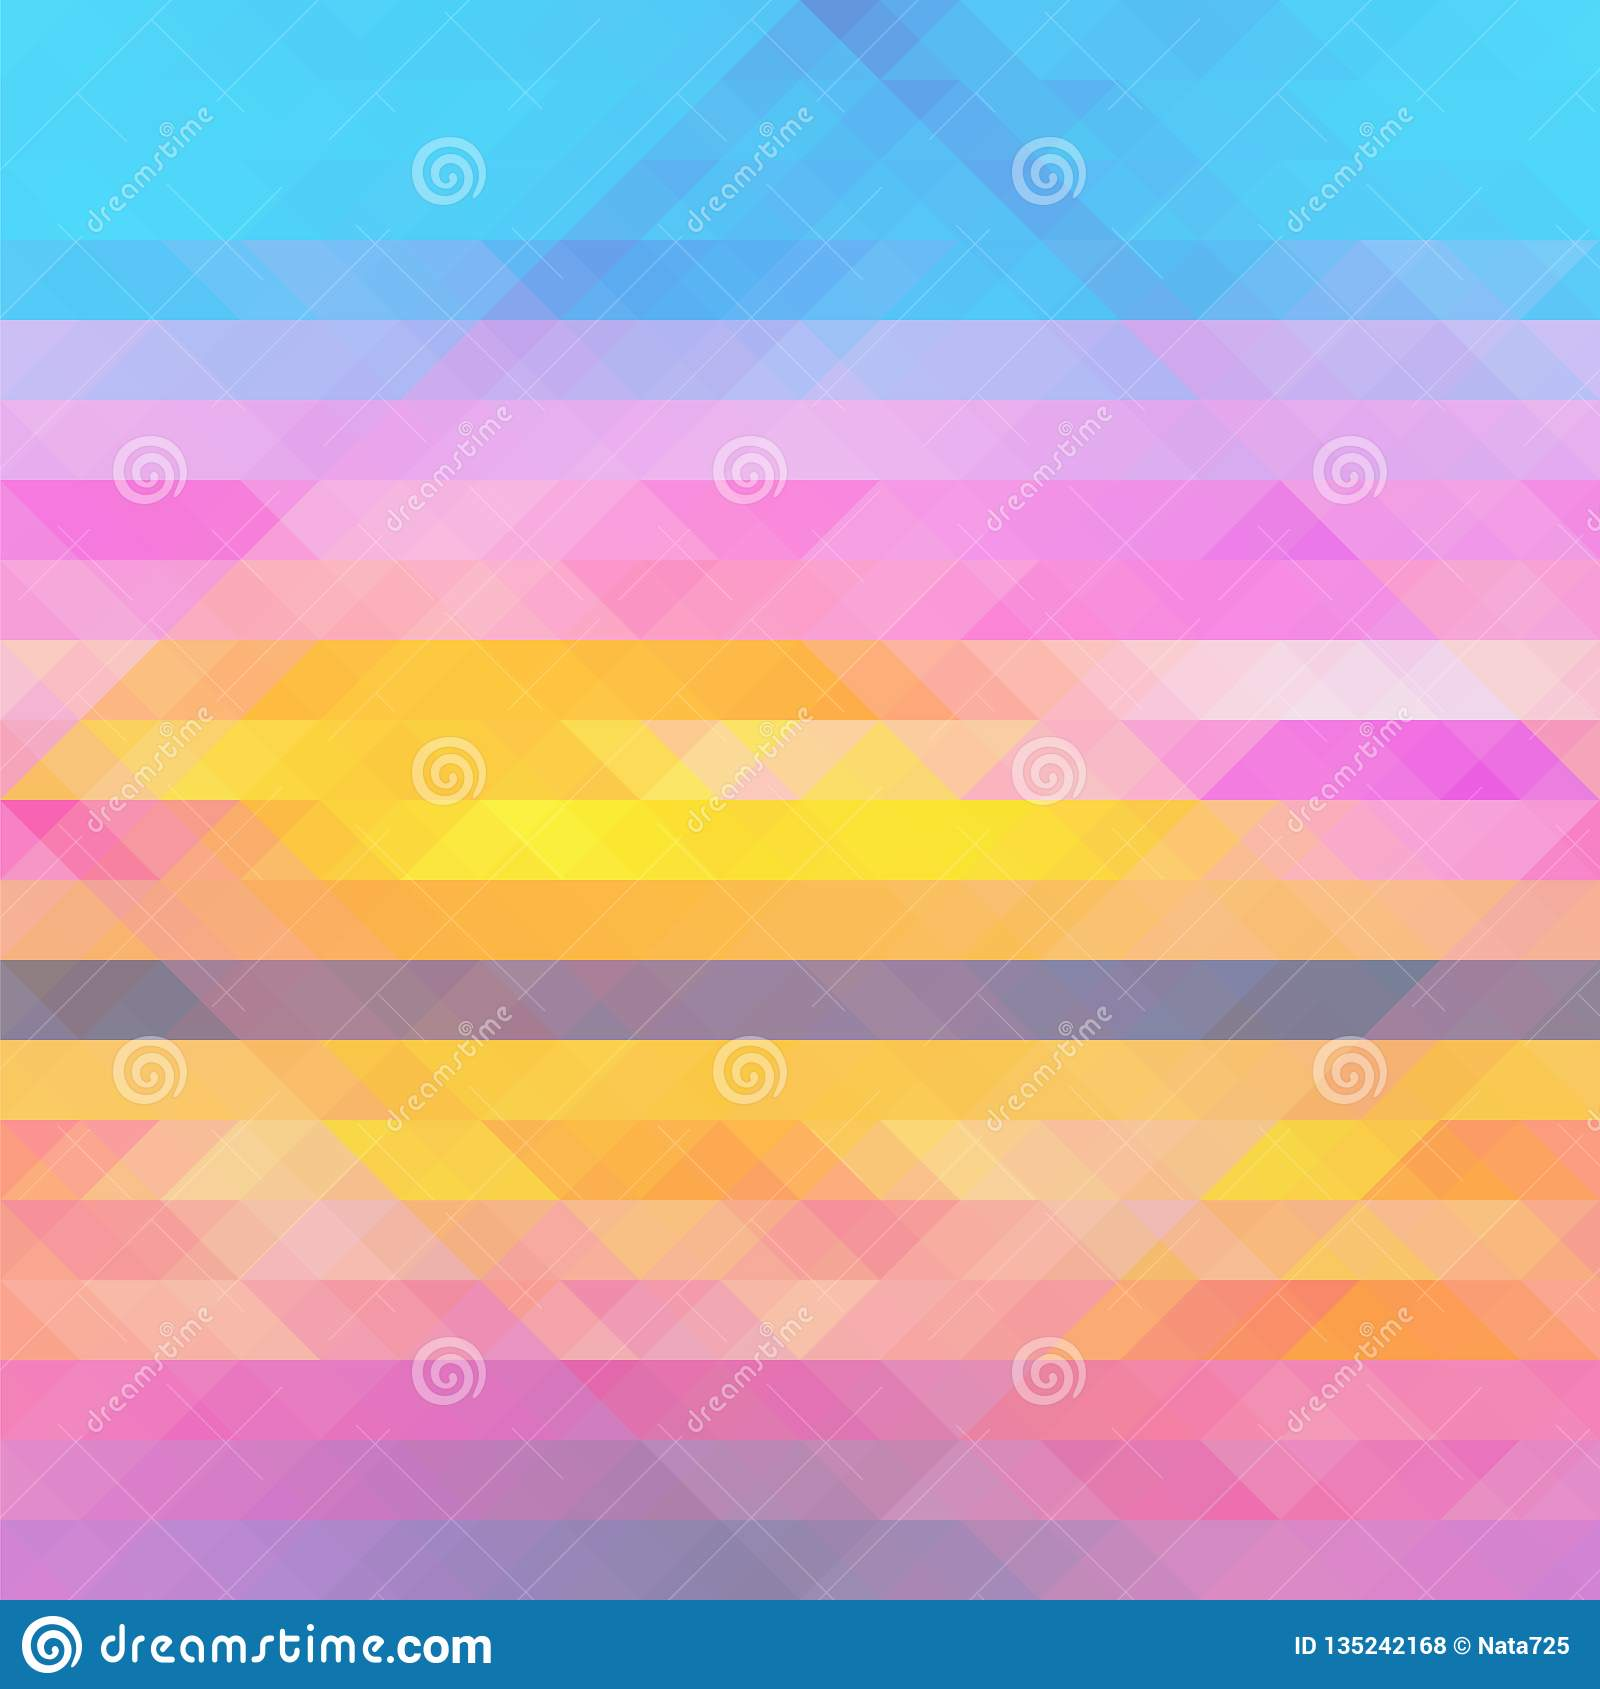 Abstract multicolored geometric pattern background with triangles